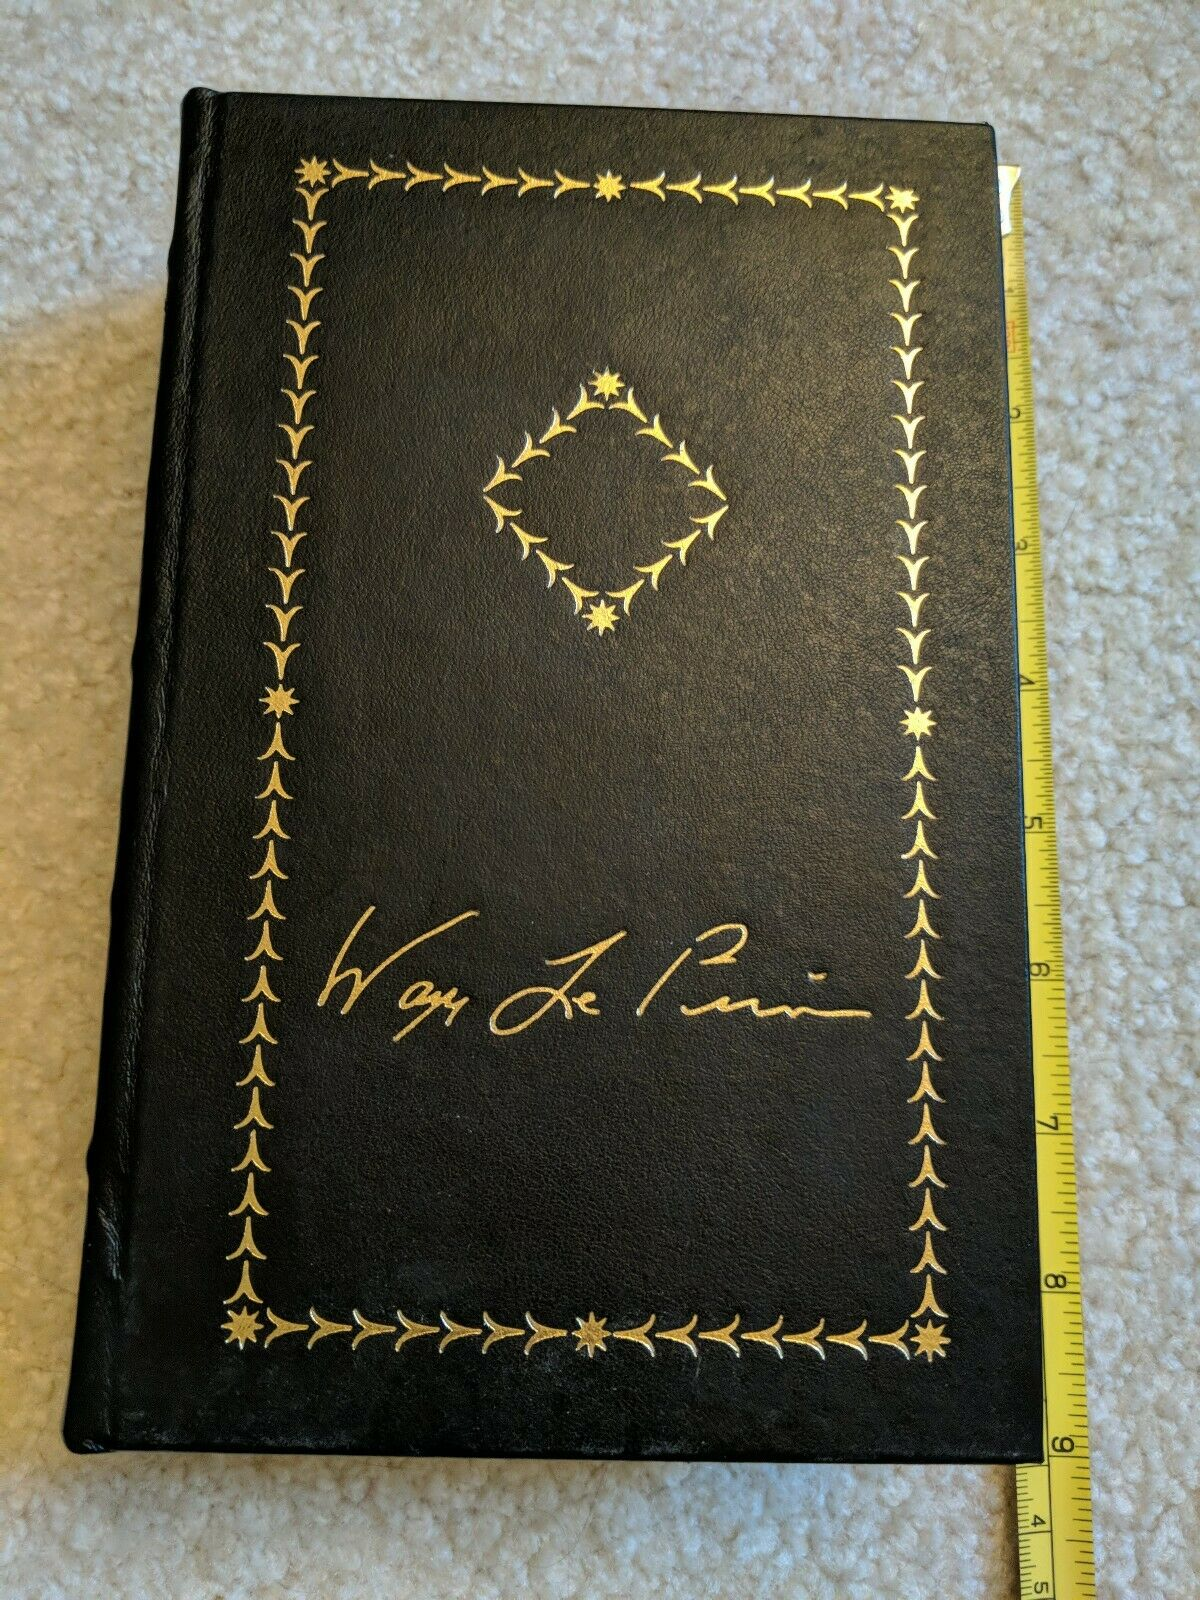 The Framing The Fathers Of The US Constitution Max Farrand Leather HC Library - $19.99